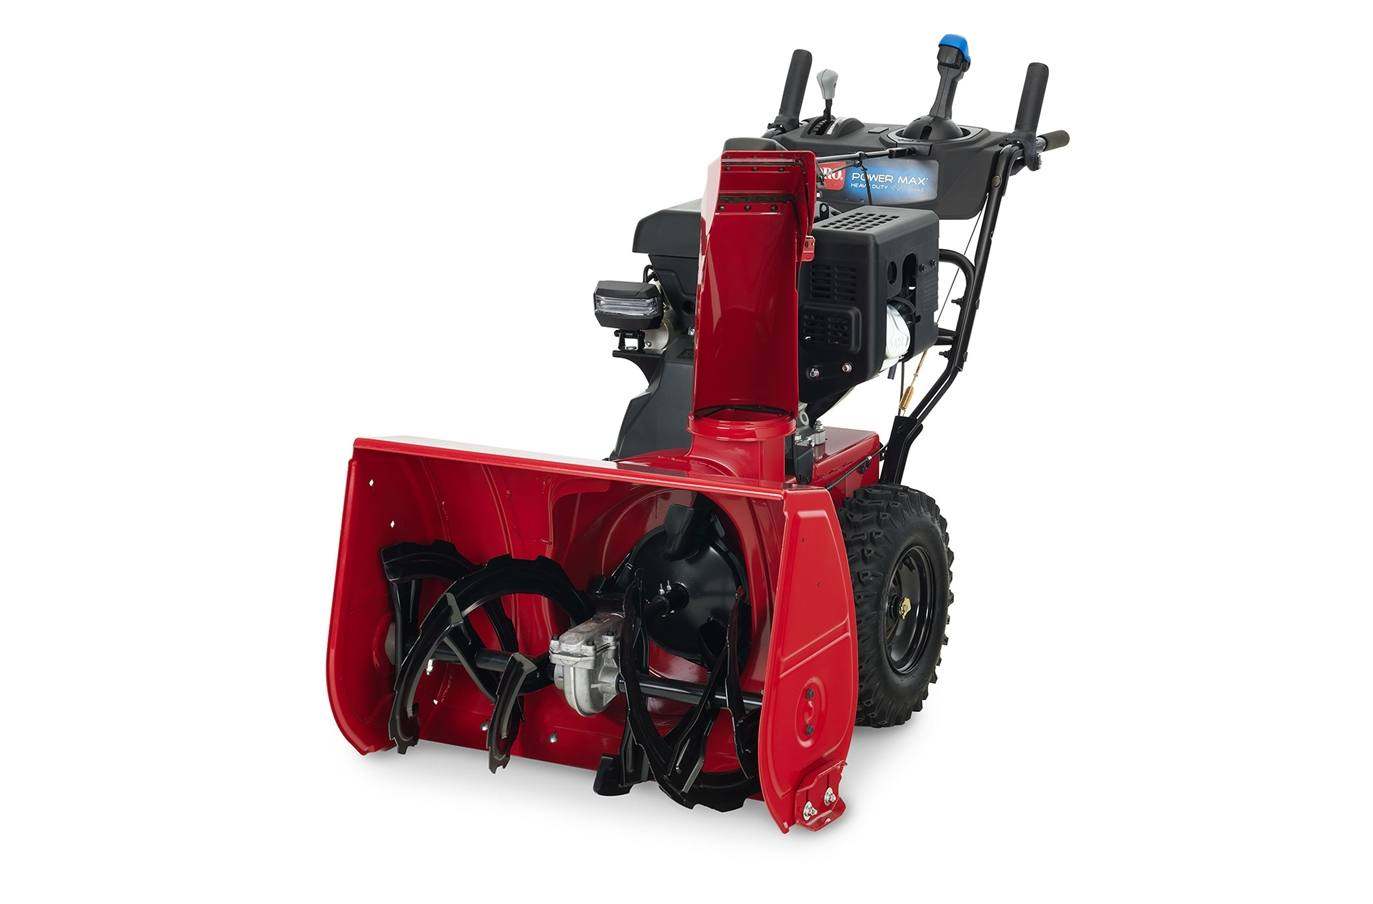 Toro 30 Power Max Hd 1030 Ohae 302cc Two Stage Electric Start Gas Snow Blower 38830 For Sale In Maplewood Mn Gruber S Power Equipment Maplewood Mn 651 770 7680